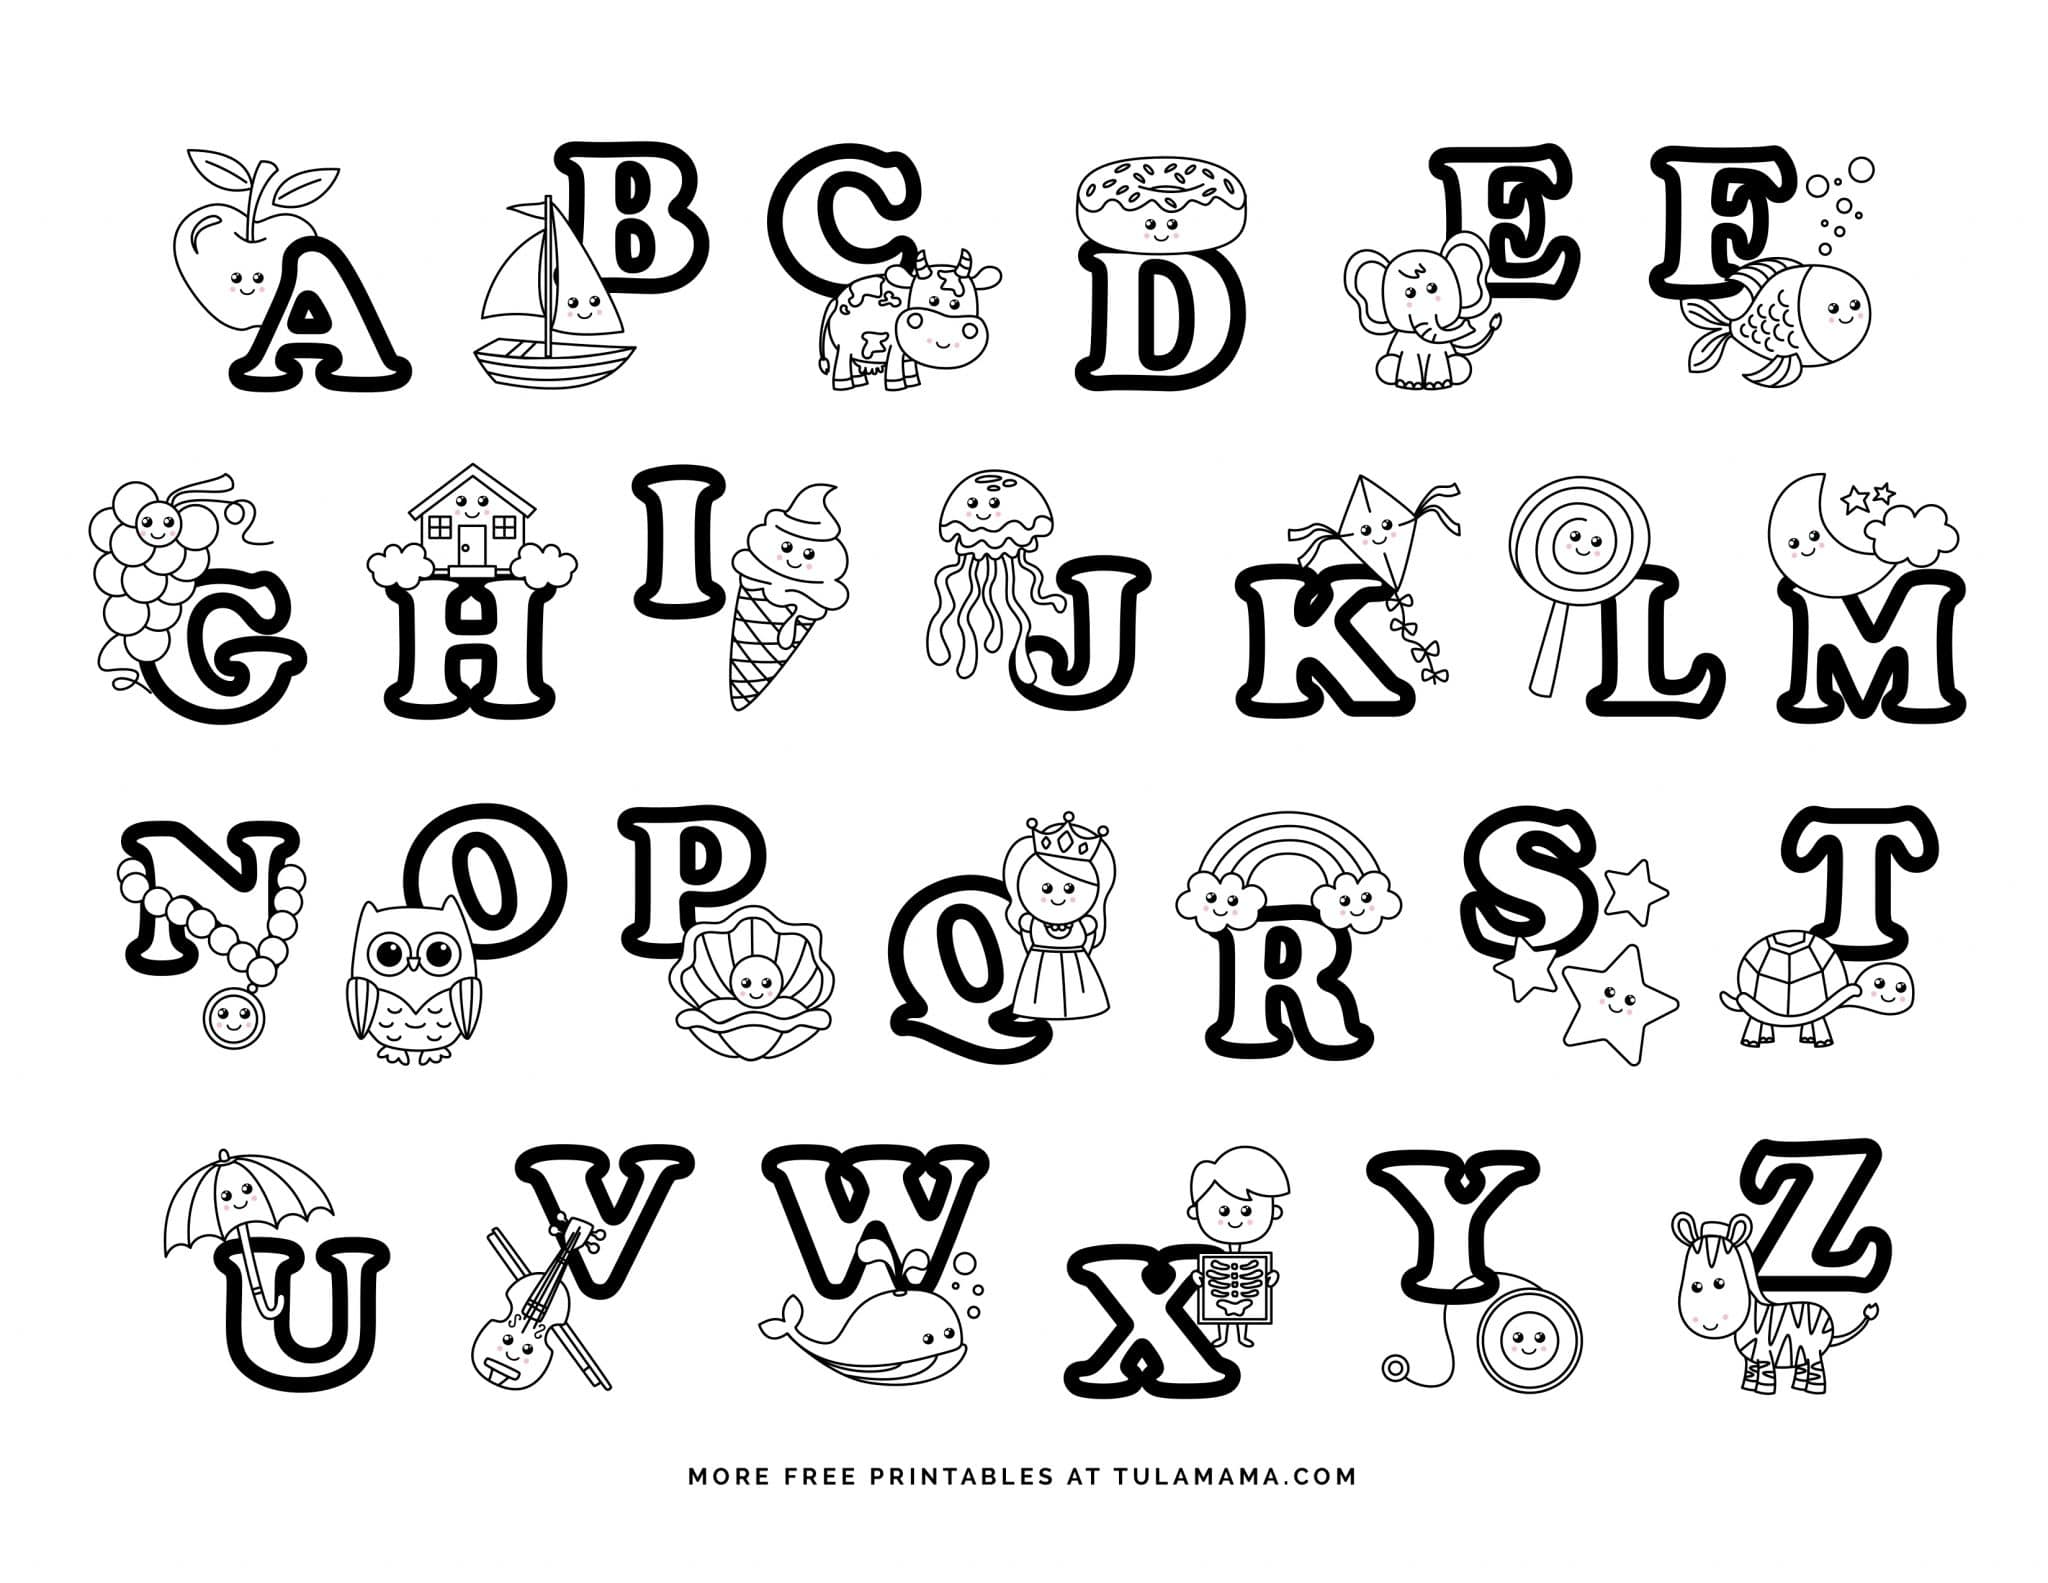 toddler abc coloring pages free printable alphabet coloring pages for kids 123 kids toddler coloring pages abc